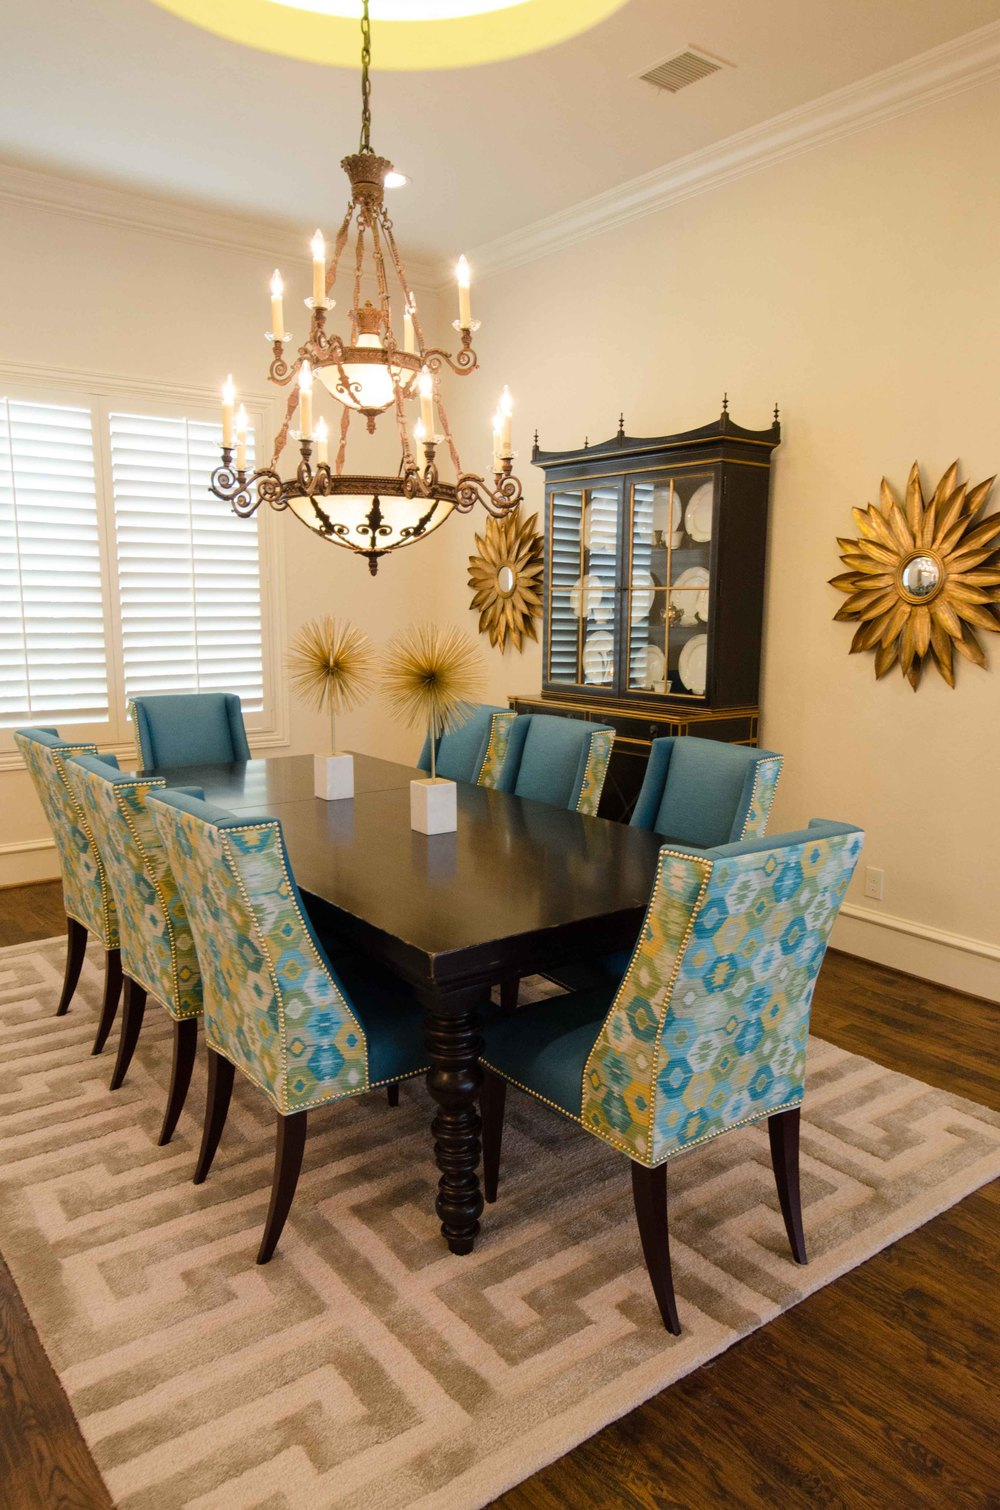 Mixing modern and traditional in a dining room